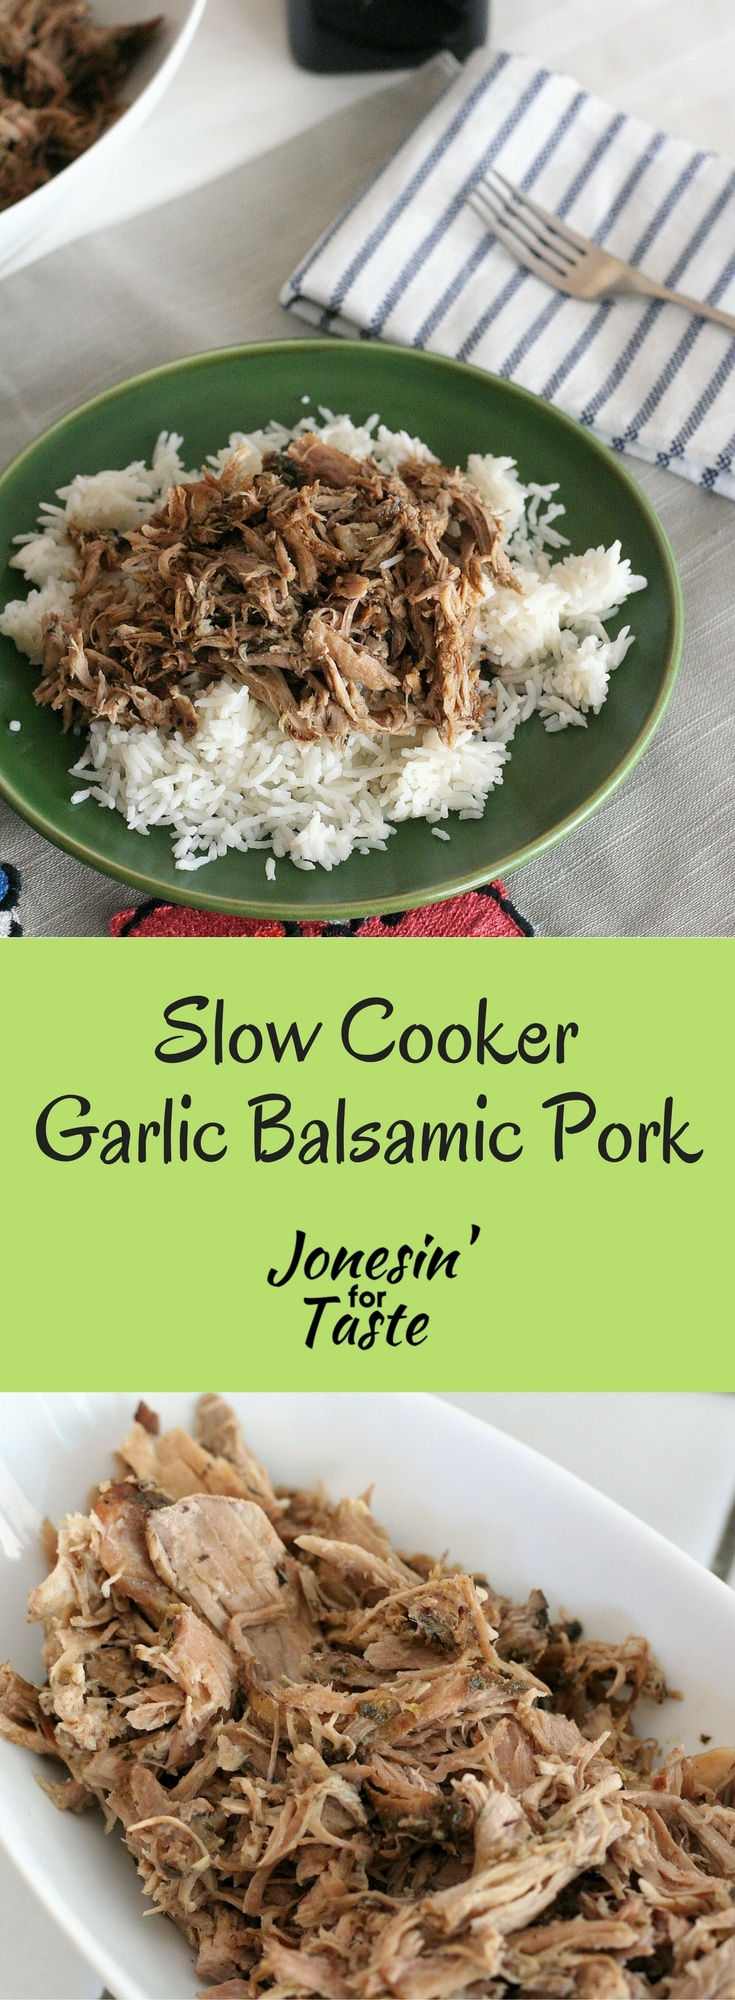 Slow Cooker Garlic Balsamic Pork is a flavorful tangy and simple main dish that can be easily re-purposed into other dishes. #slowcooker